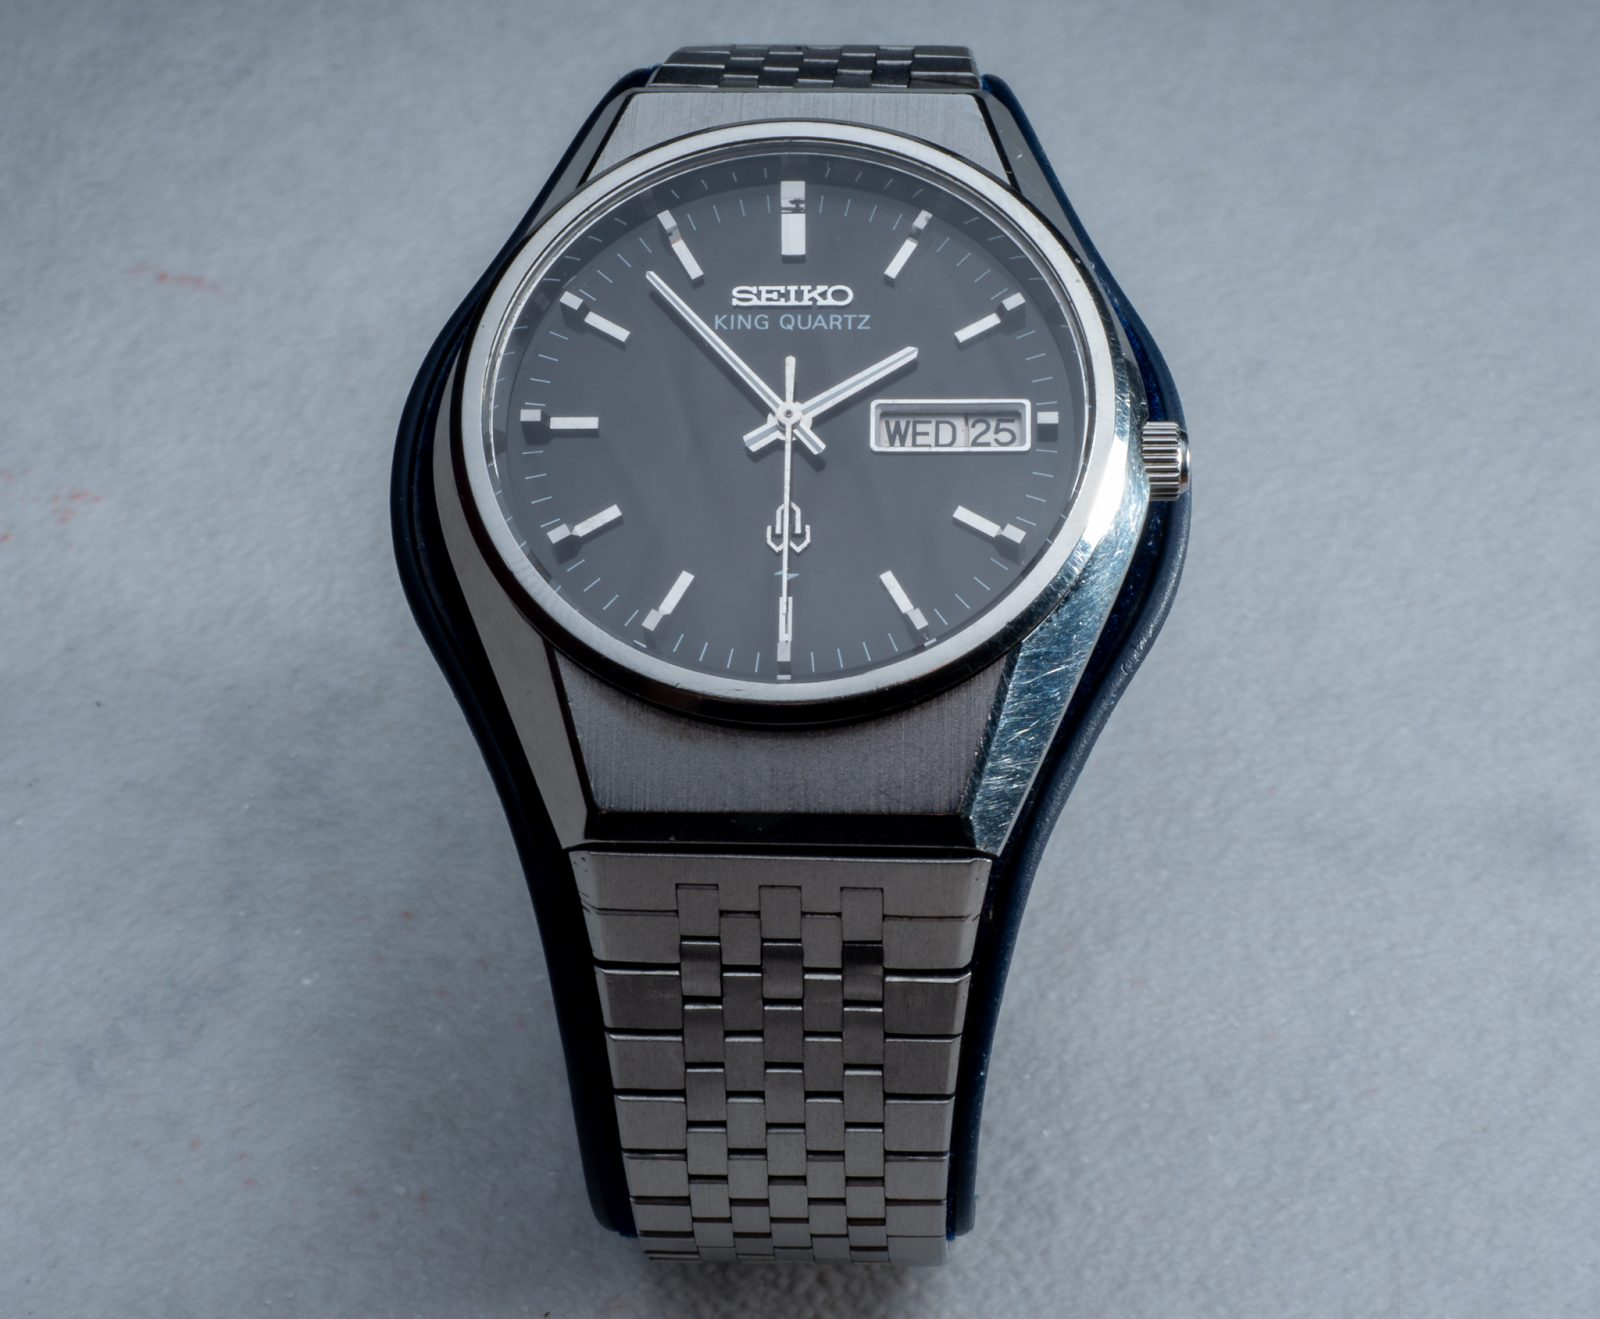 Seiko King Quartz 0853-8040